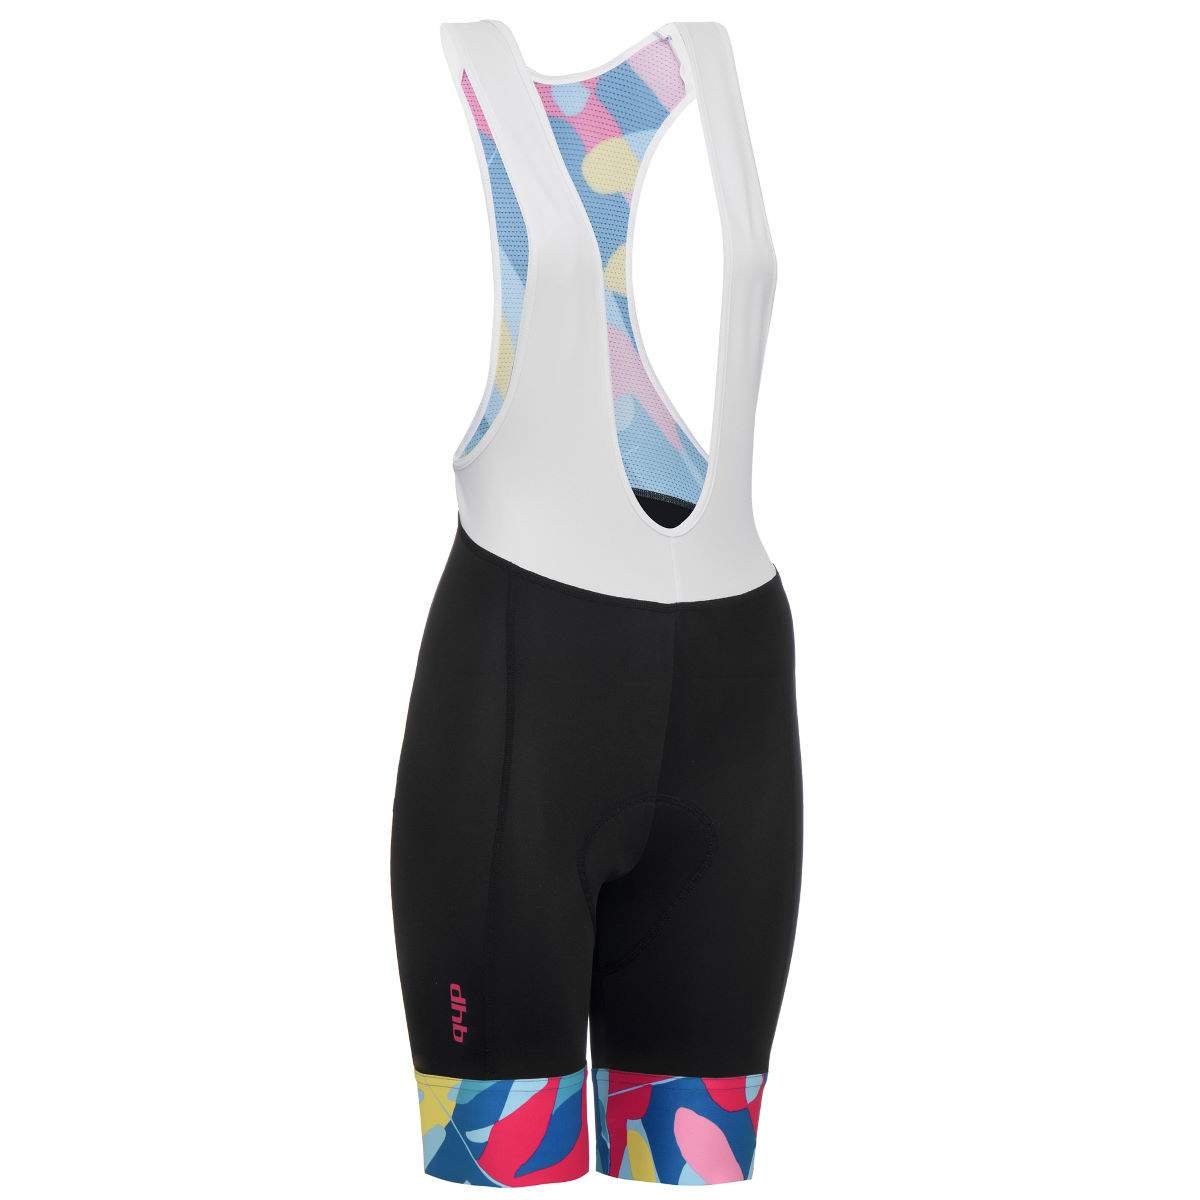 dhb Blok Women's Bib Short - Tropic - UK 10 Black/Multi